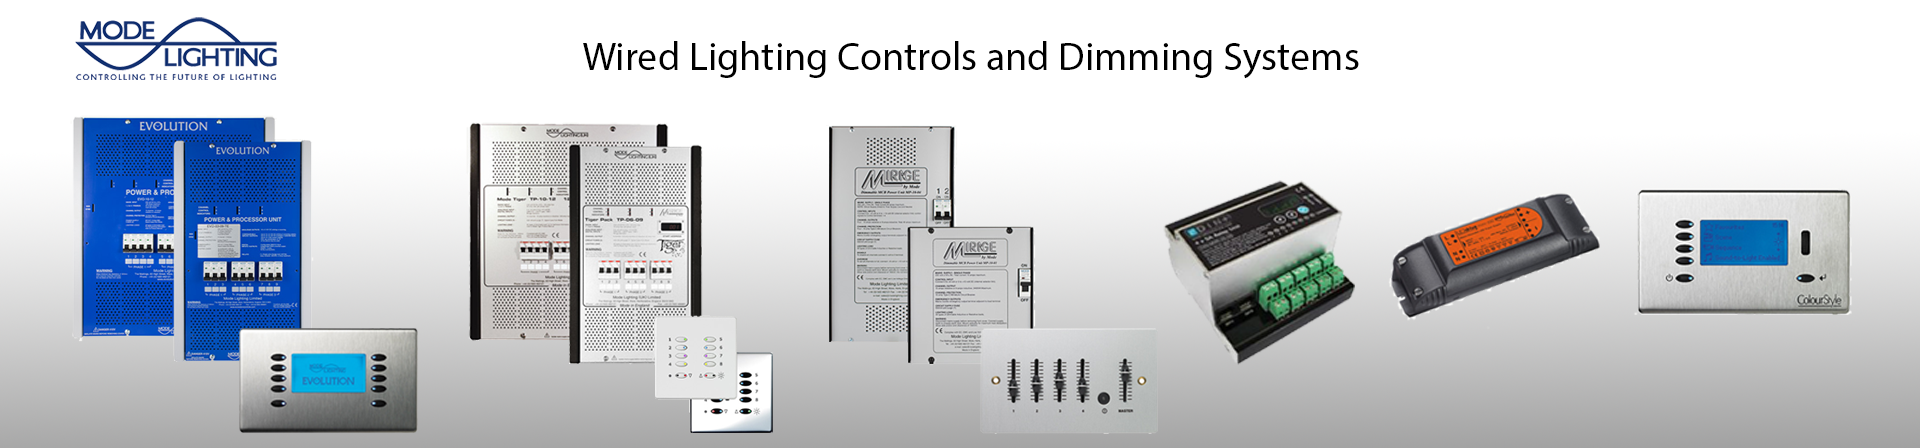 Mode Lighting Dimmer Pack Solutions